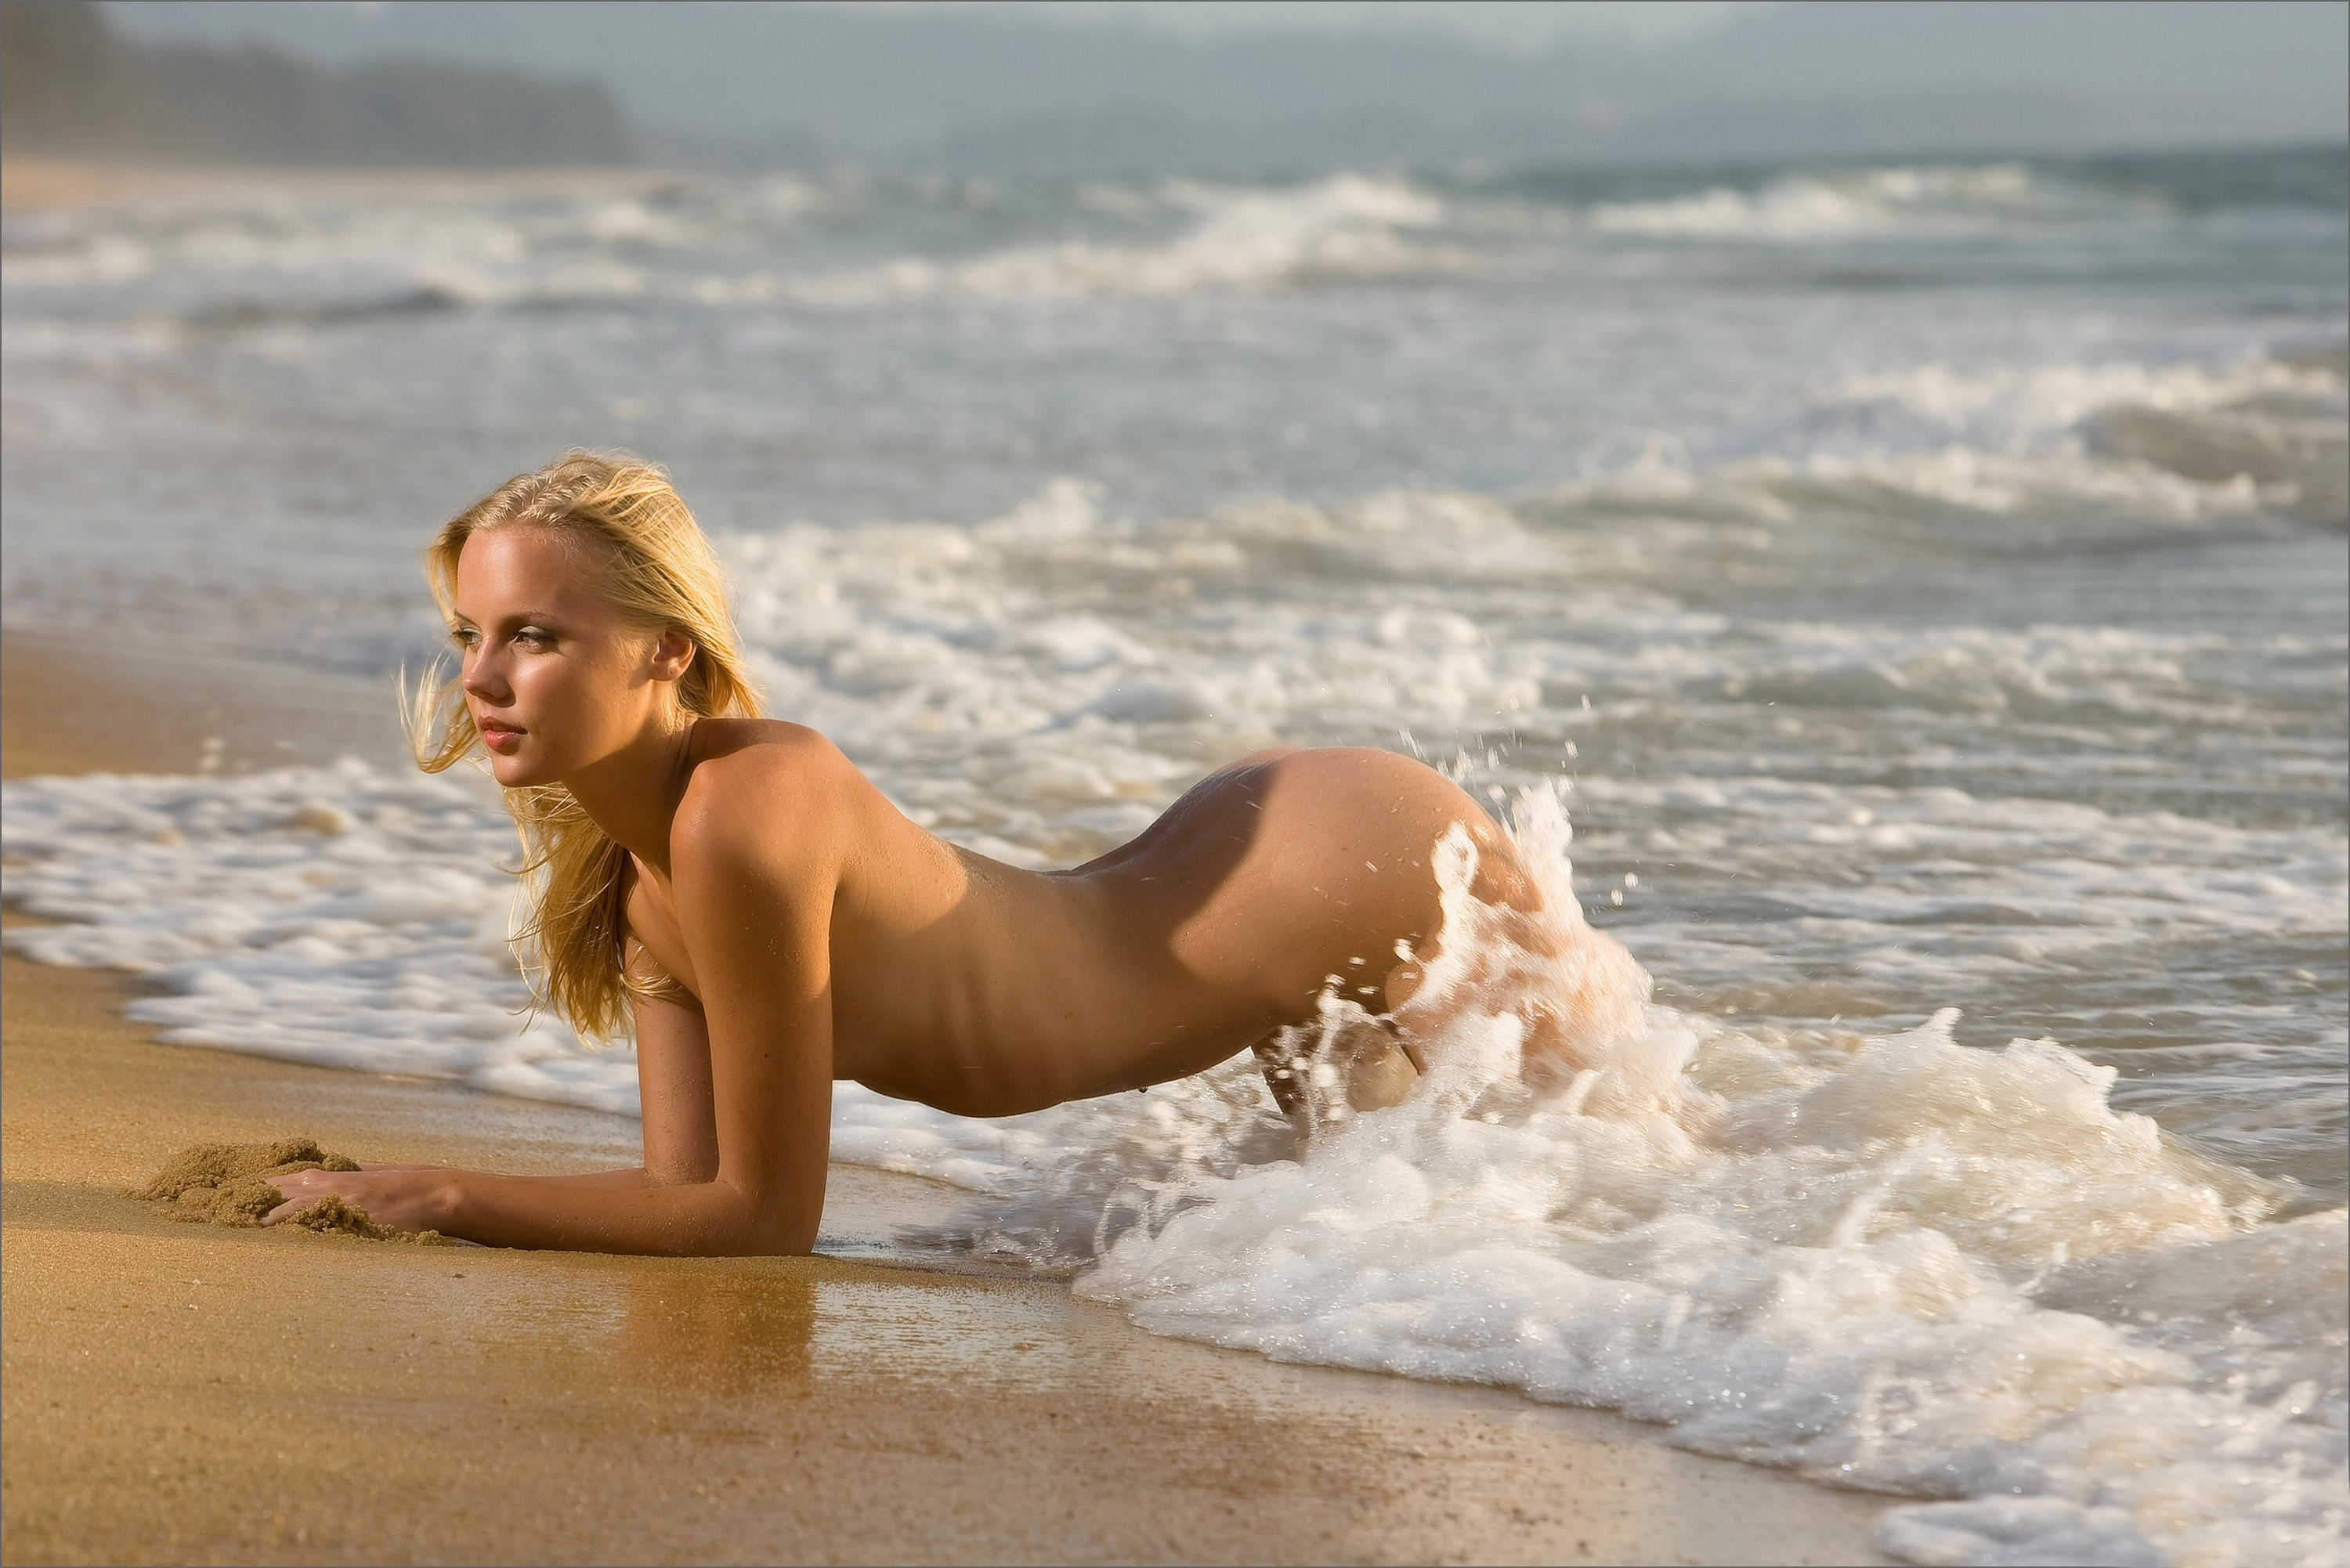 Classic sexy nude on the beach, xxxlongdong does all